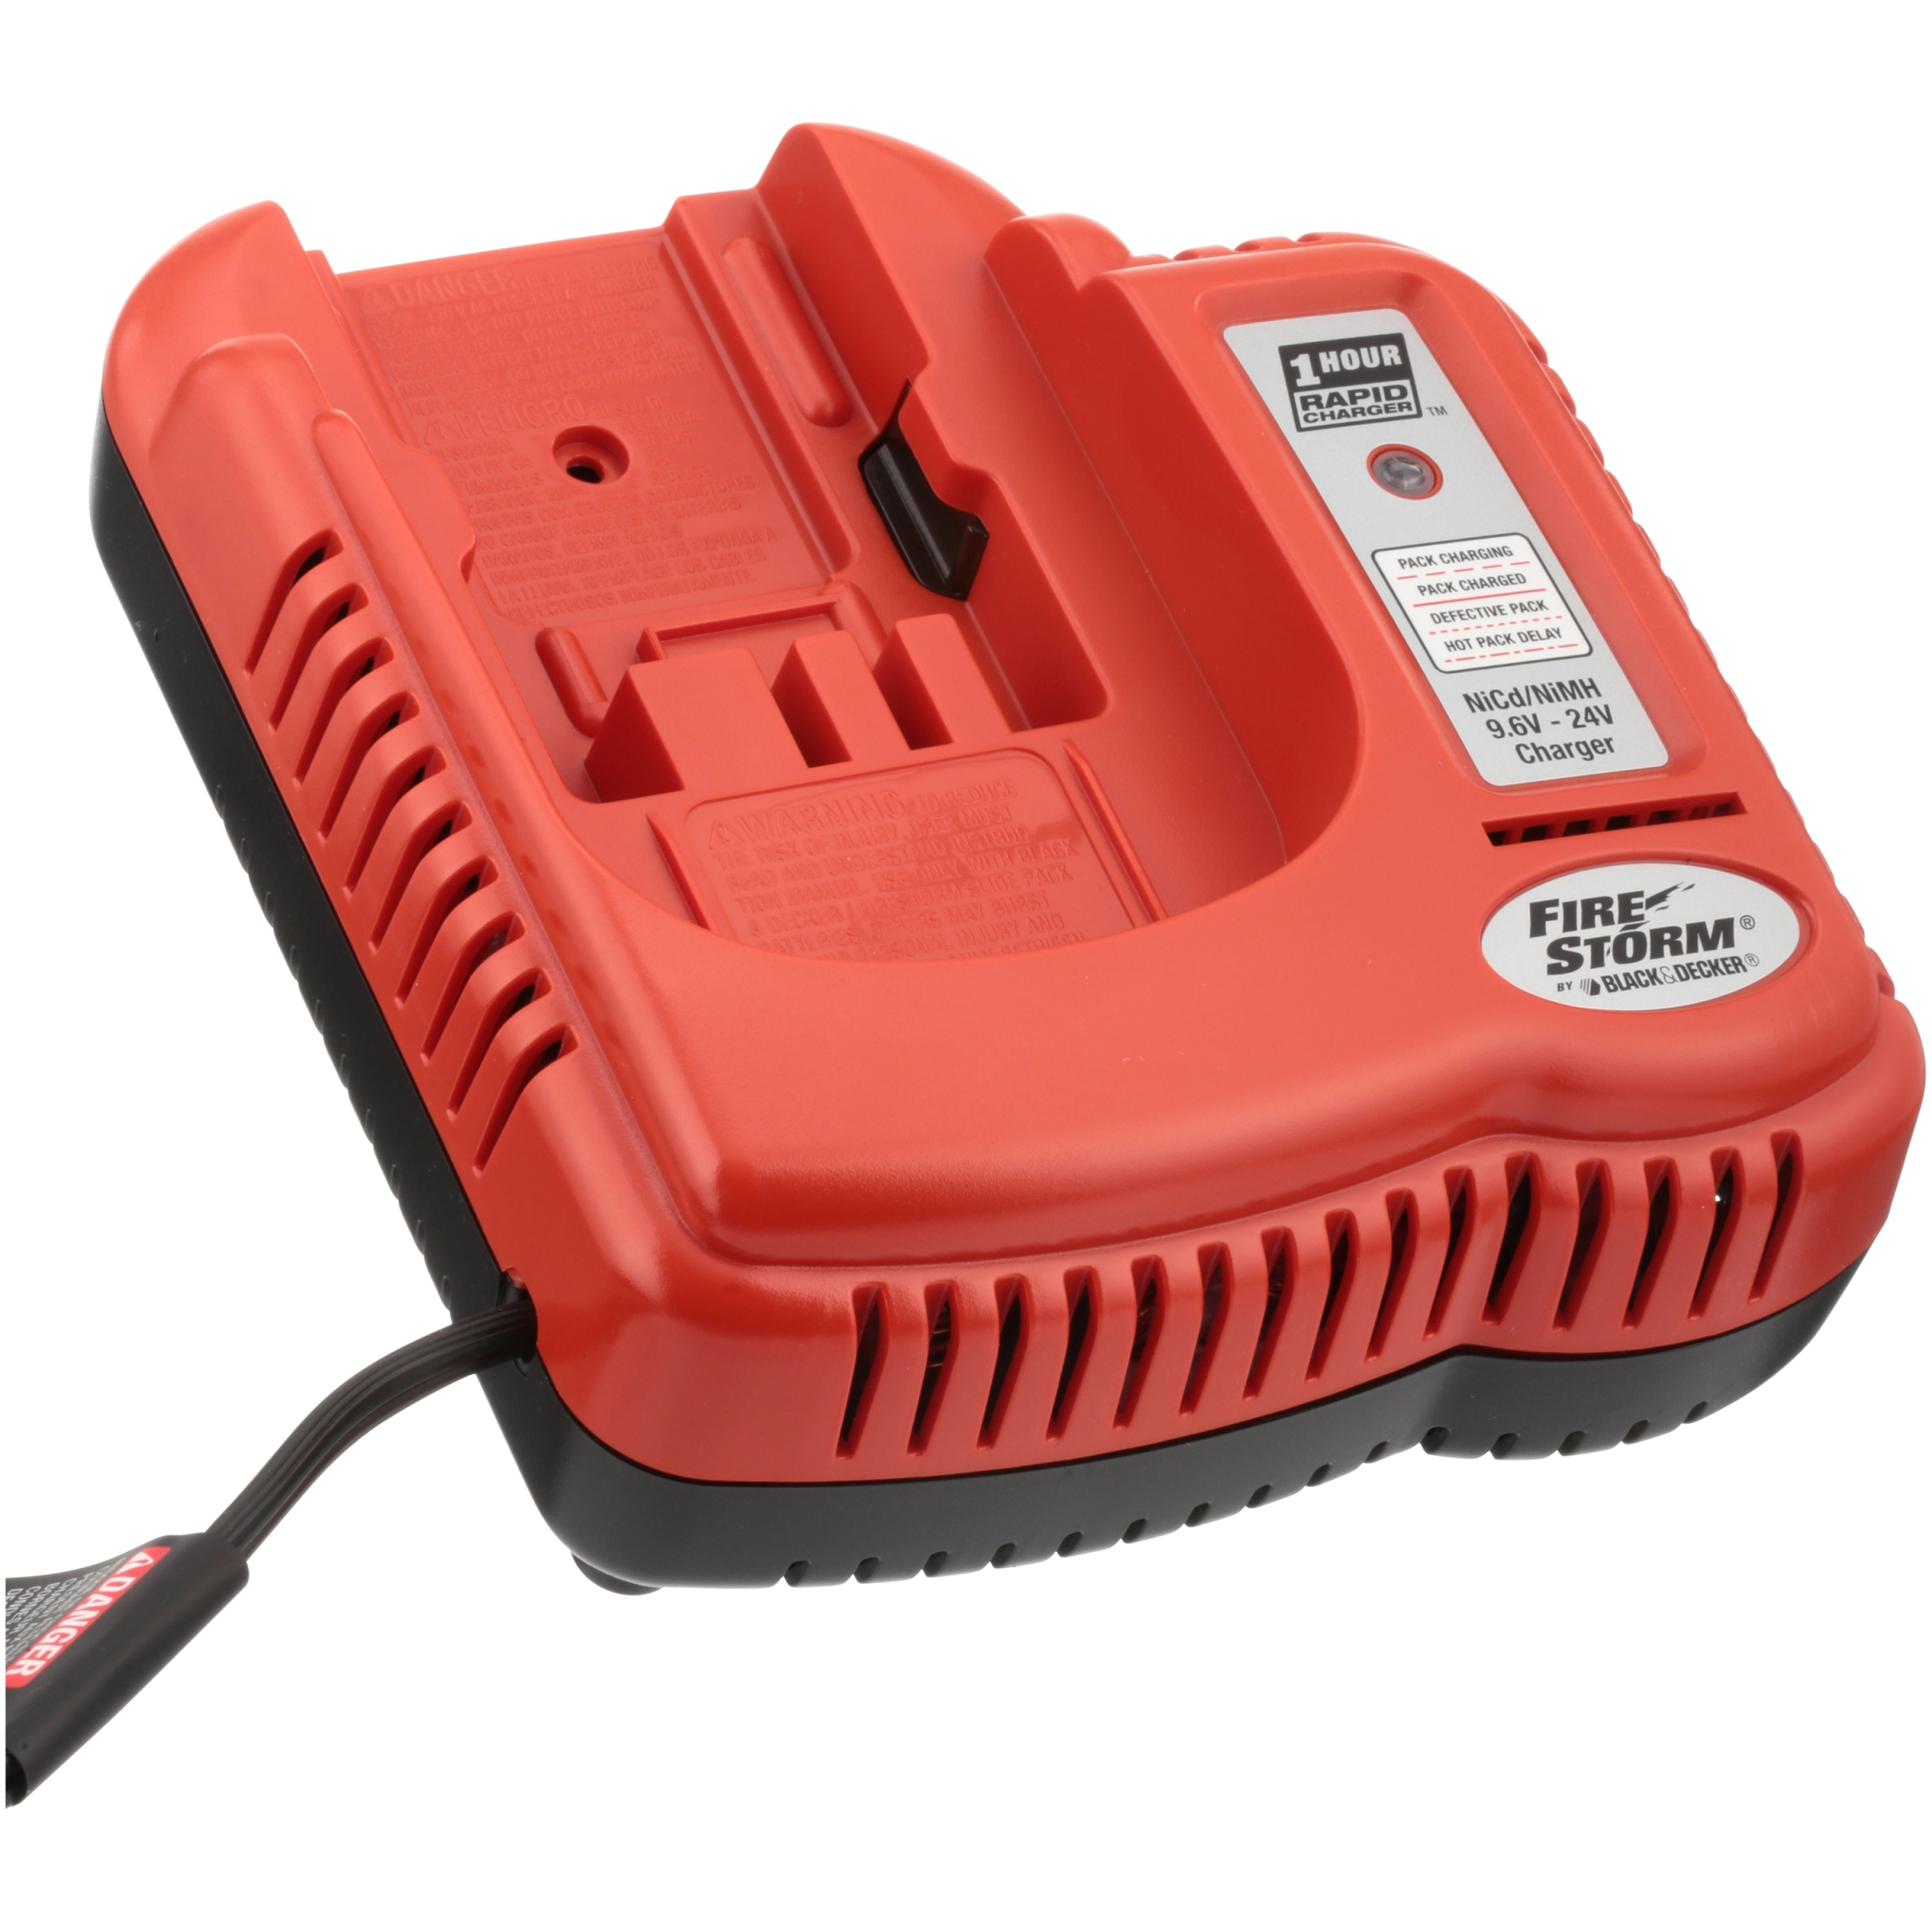 BLACK+DECKER 9.6-24V NiCad Charger, Orange